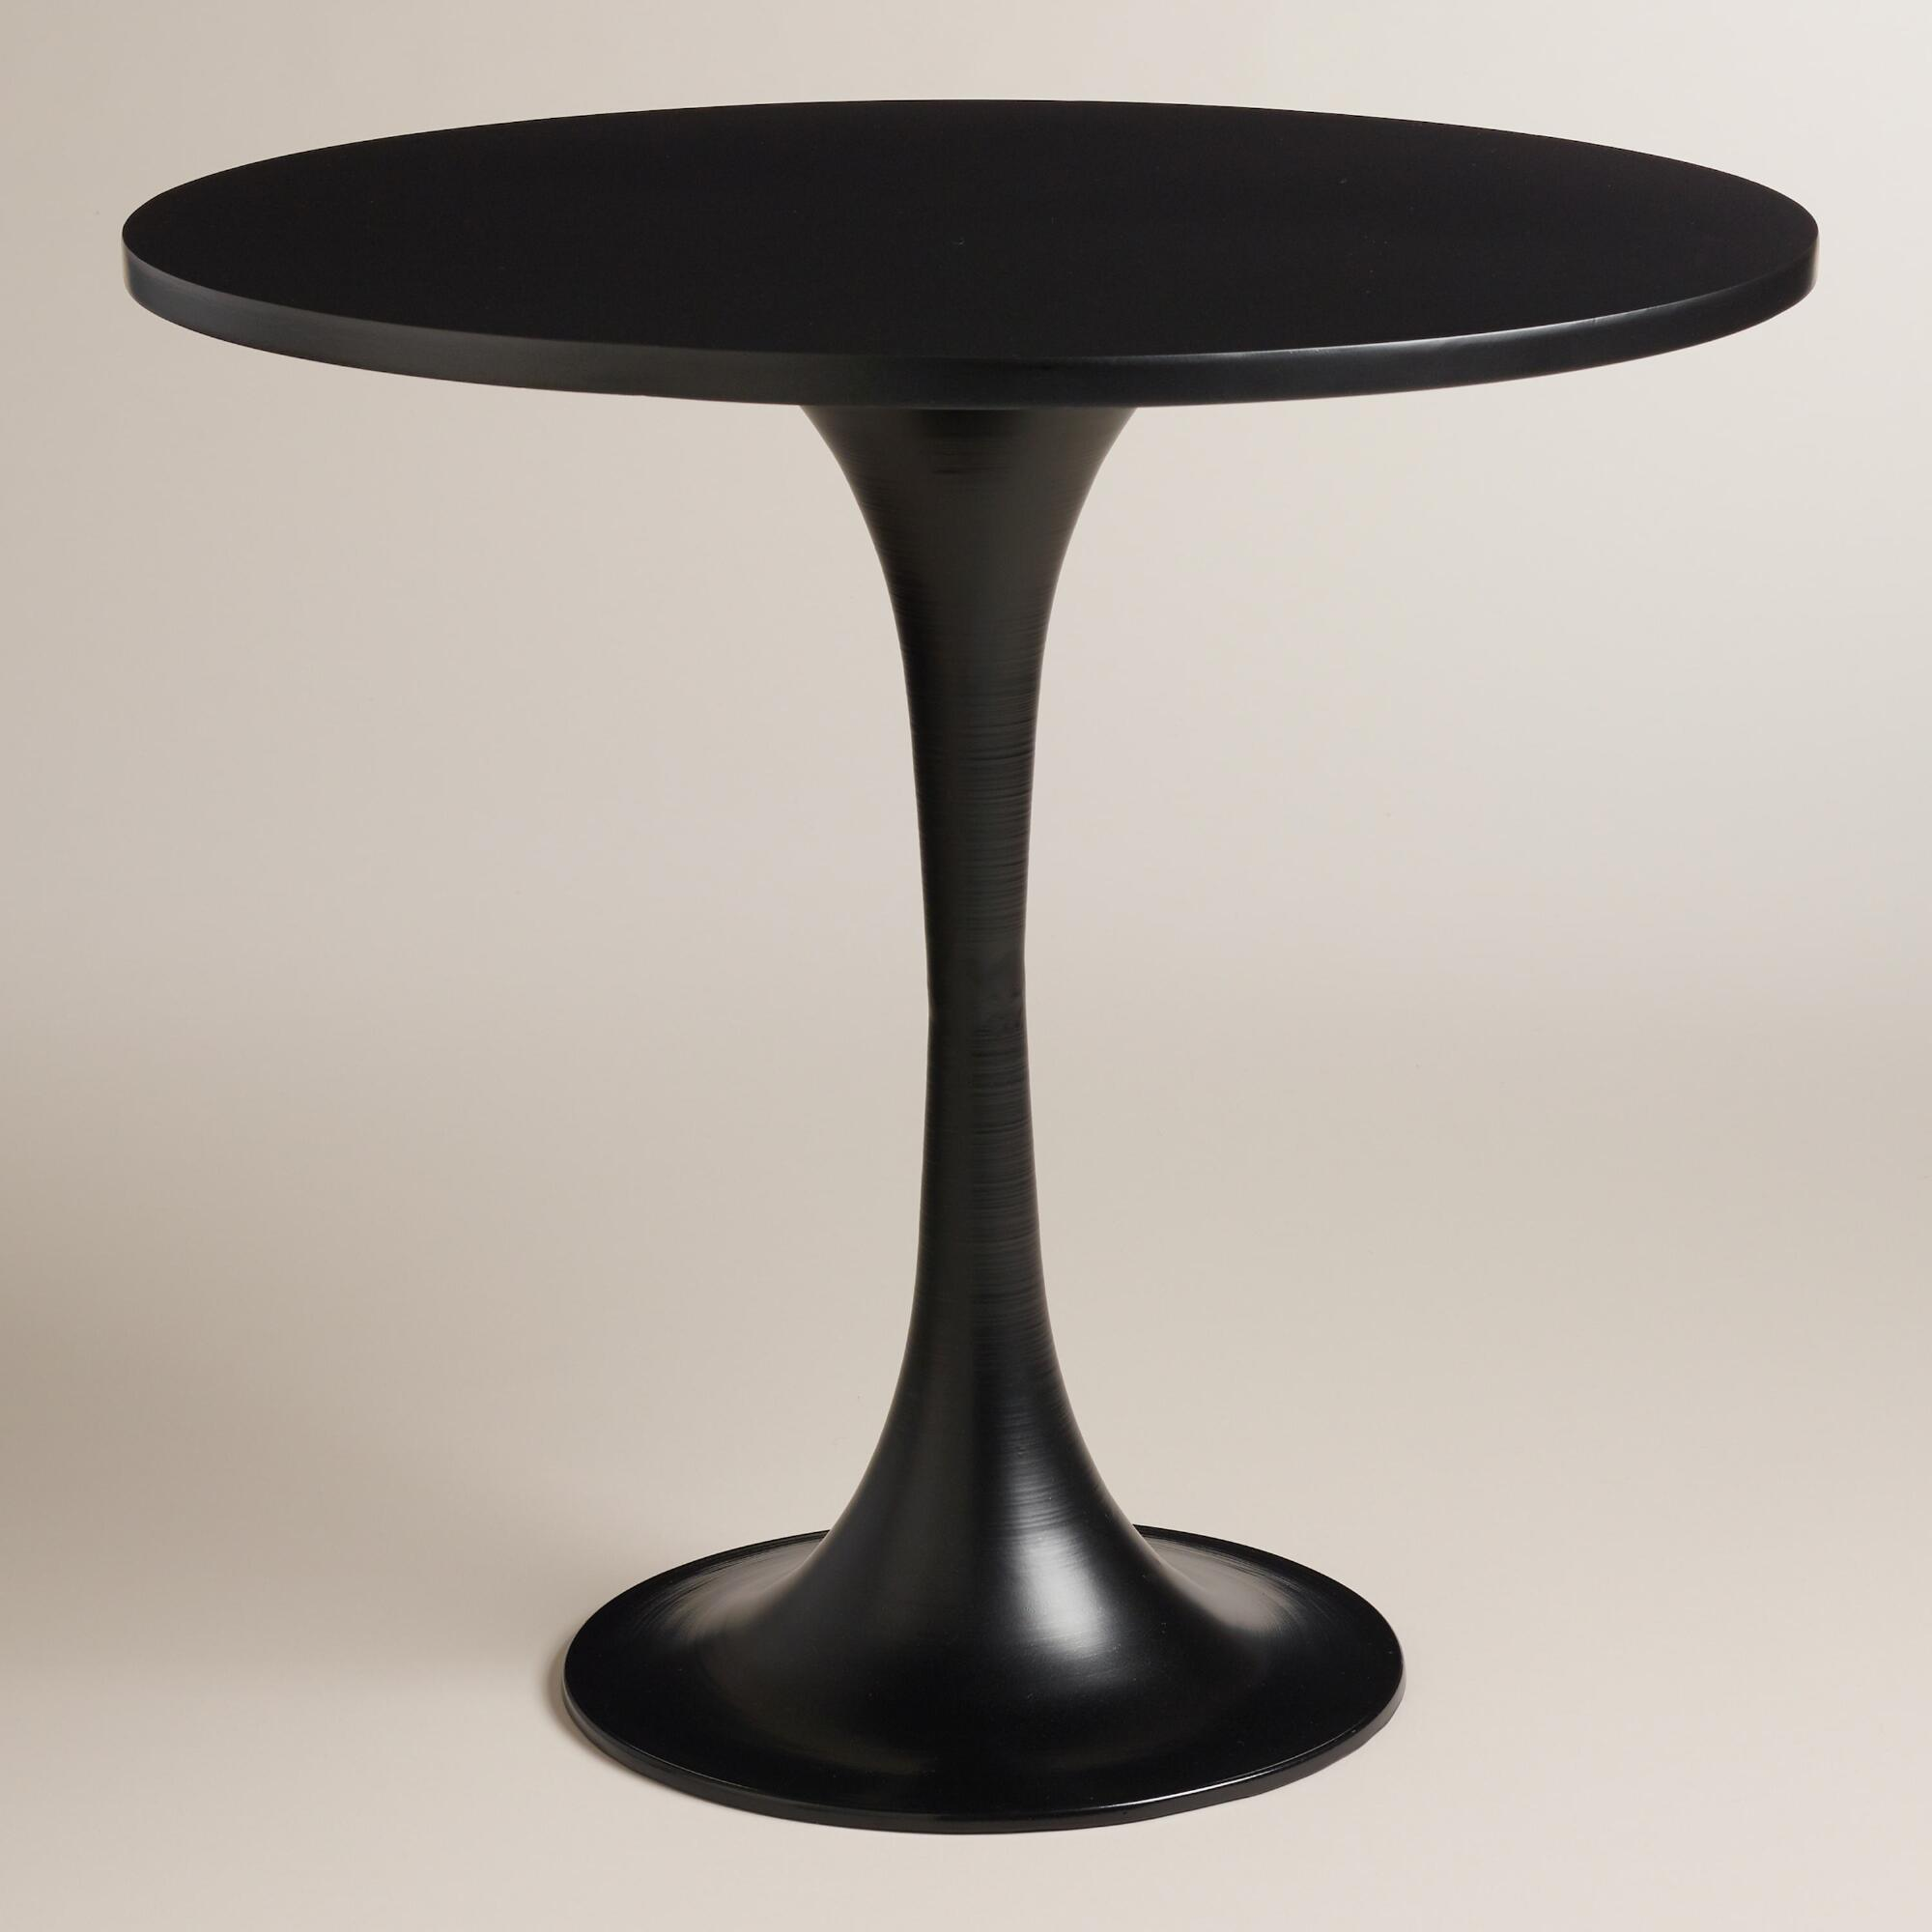 round black saarinen style tulip accent table plus world market marble gold coffee rustic kitchen trolley kmart wood dining nest country decorating ideas square end nickel lamp